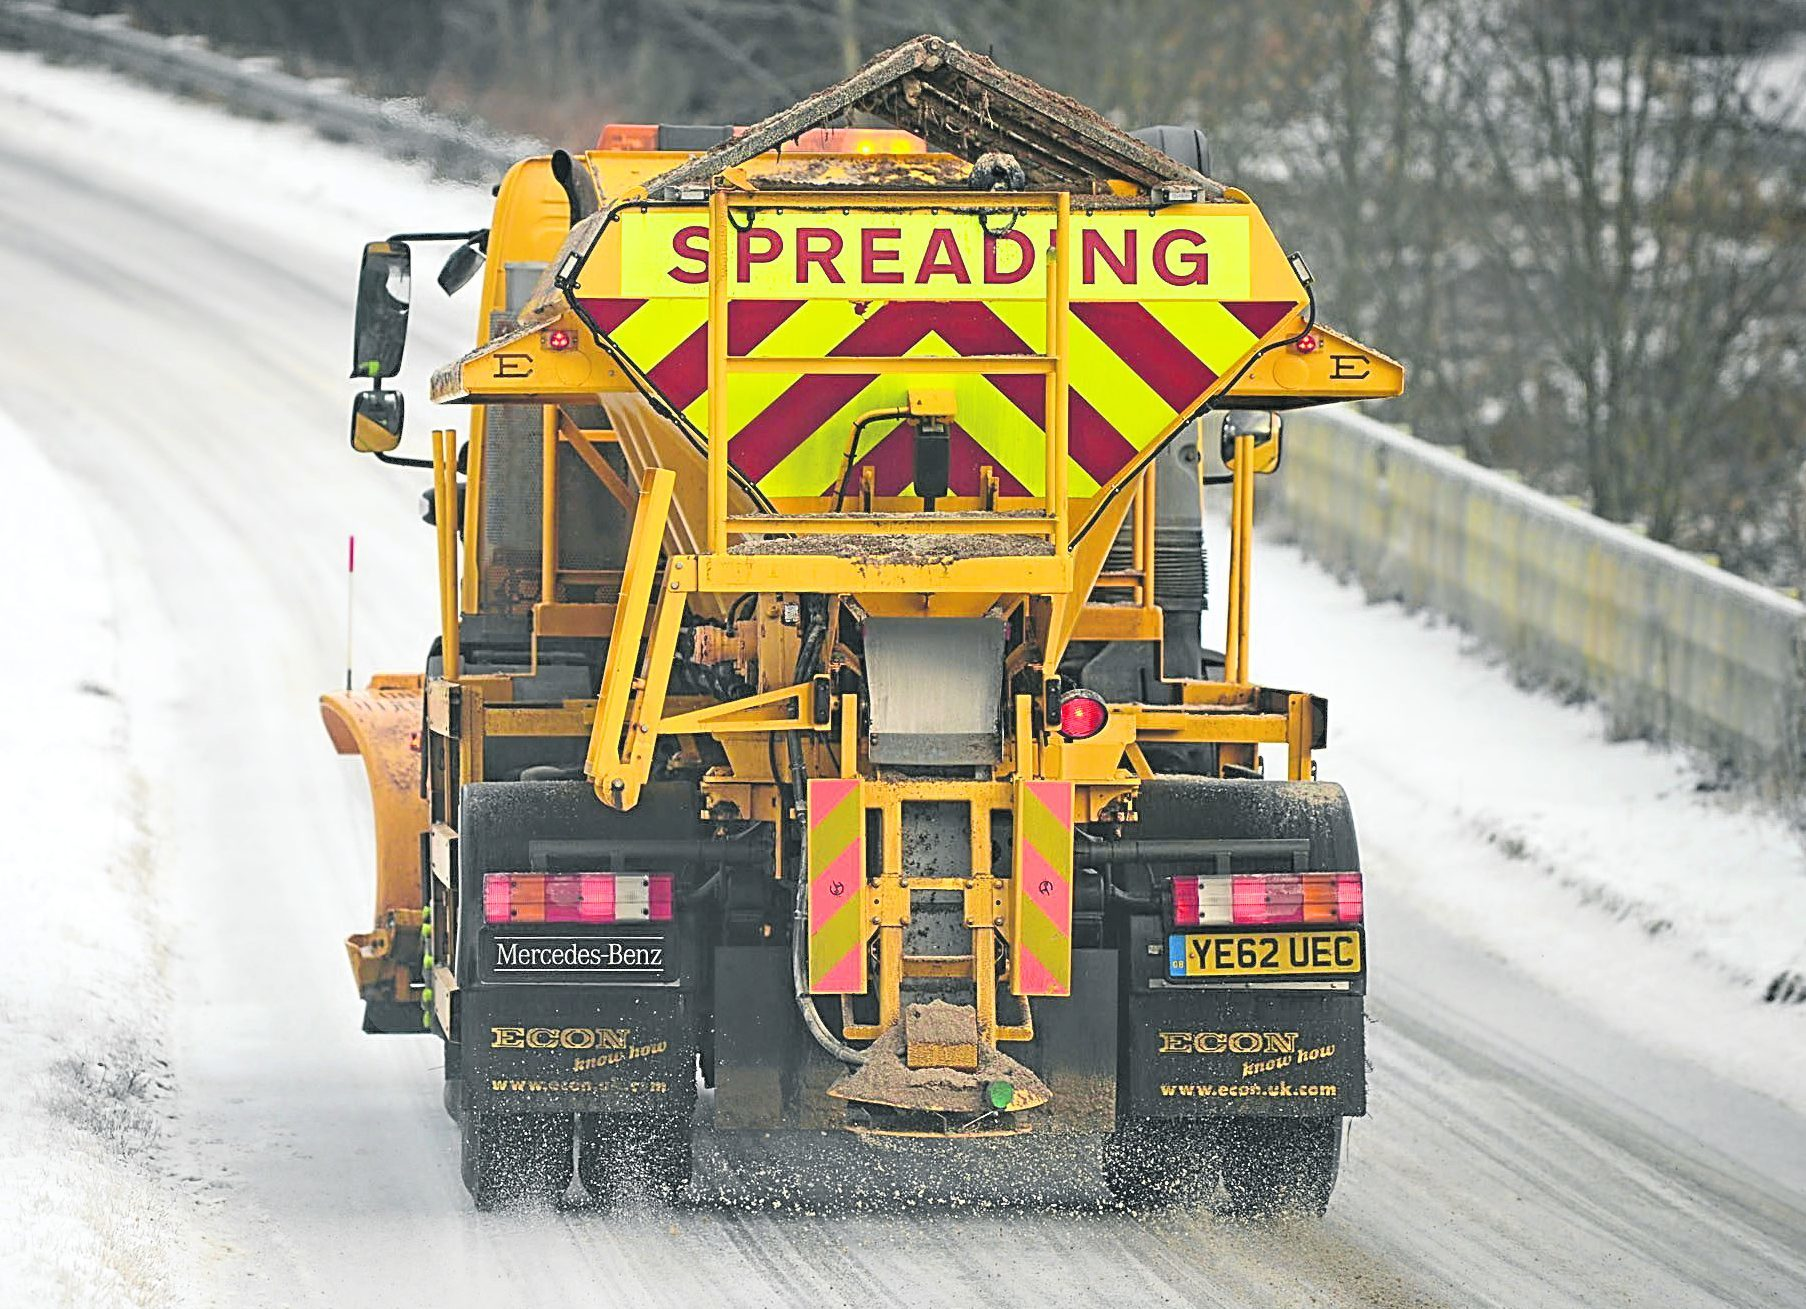 The council has been criticised for its gritting job.